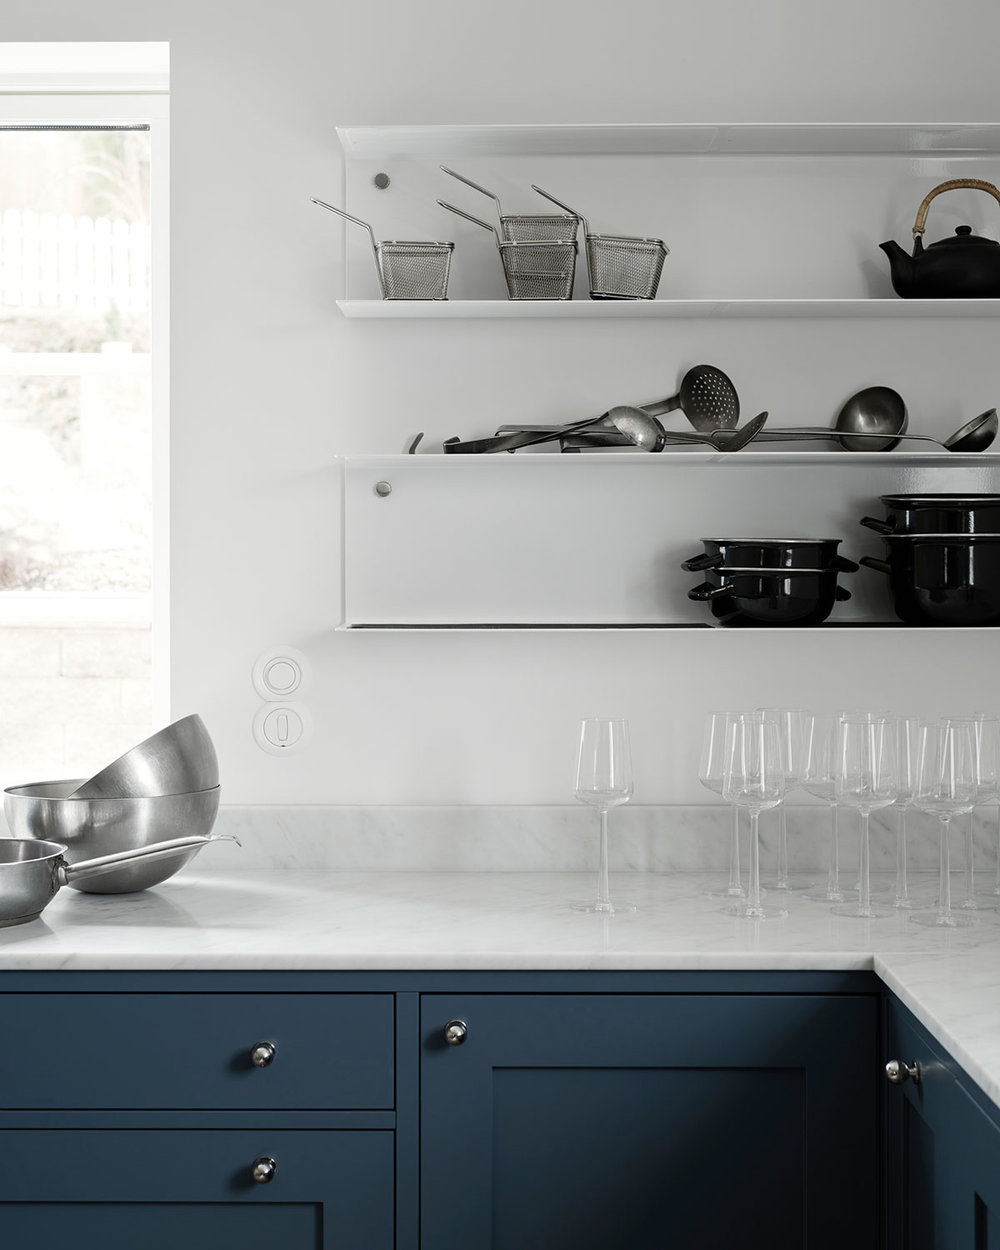 shaker kitchen design in blue, iitalla candle and white Carrara marble and Gubi lamp